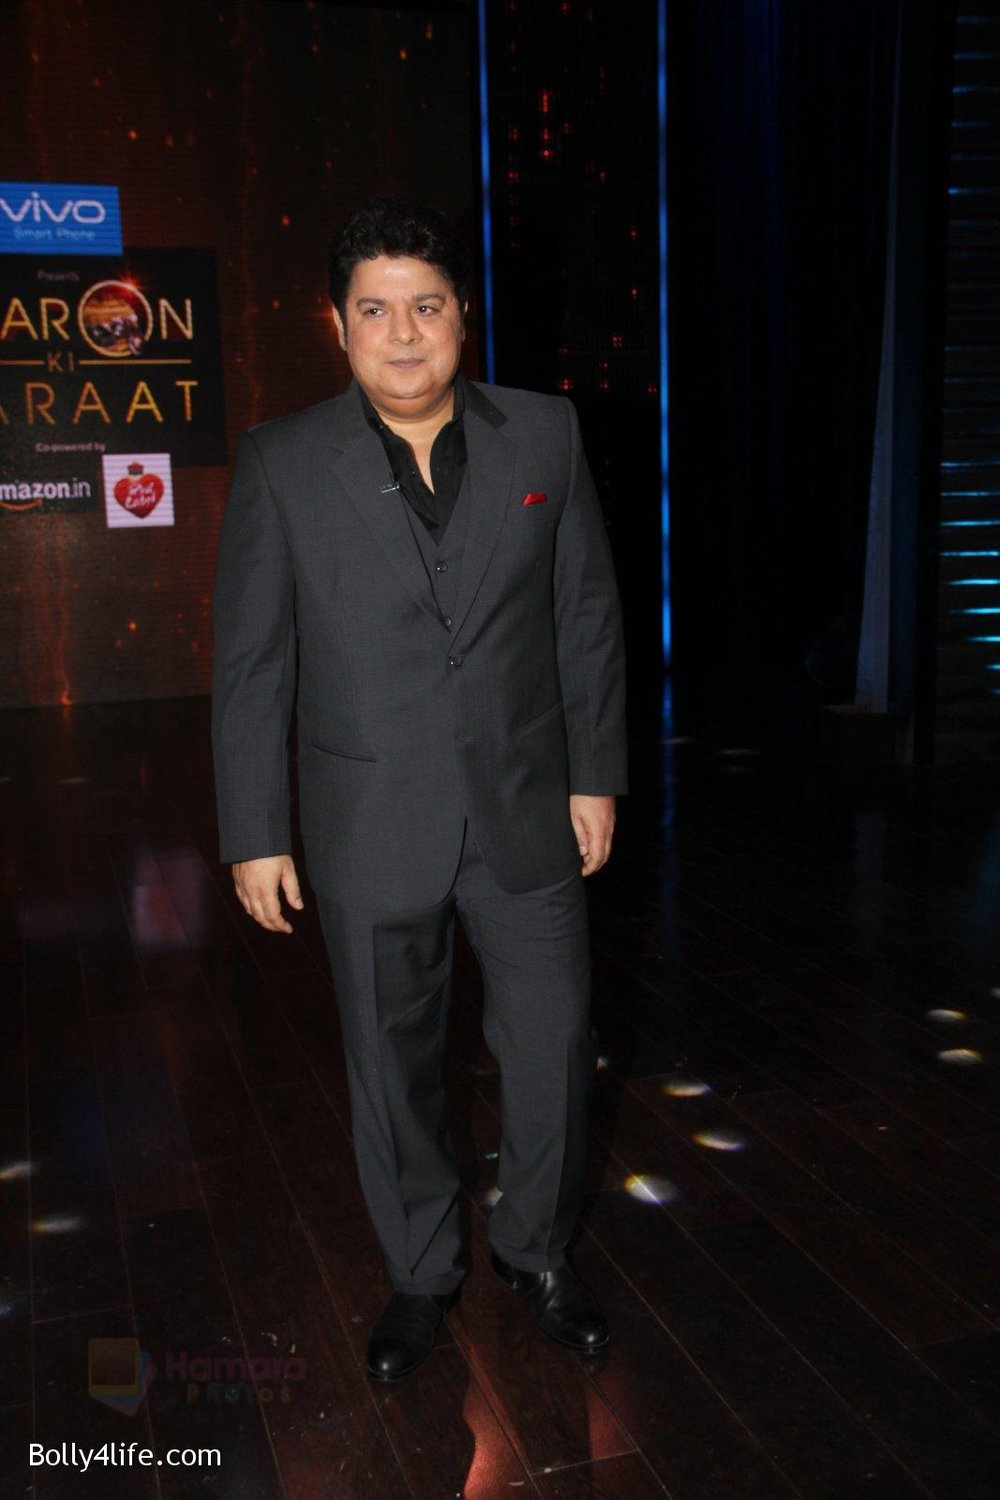 Sajid-Khan-on-the-sets-of-Yaaron-Ki-Baraat-Show-on-Zee-Tv-on-23rd-Oct-2016-89.jpg